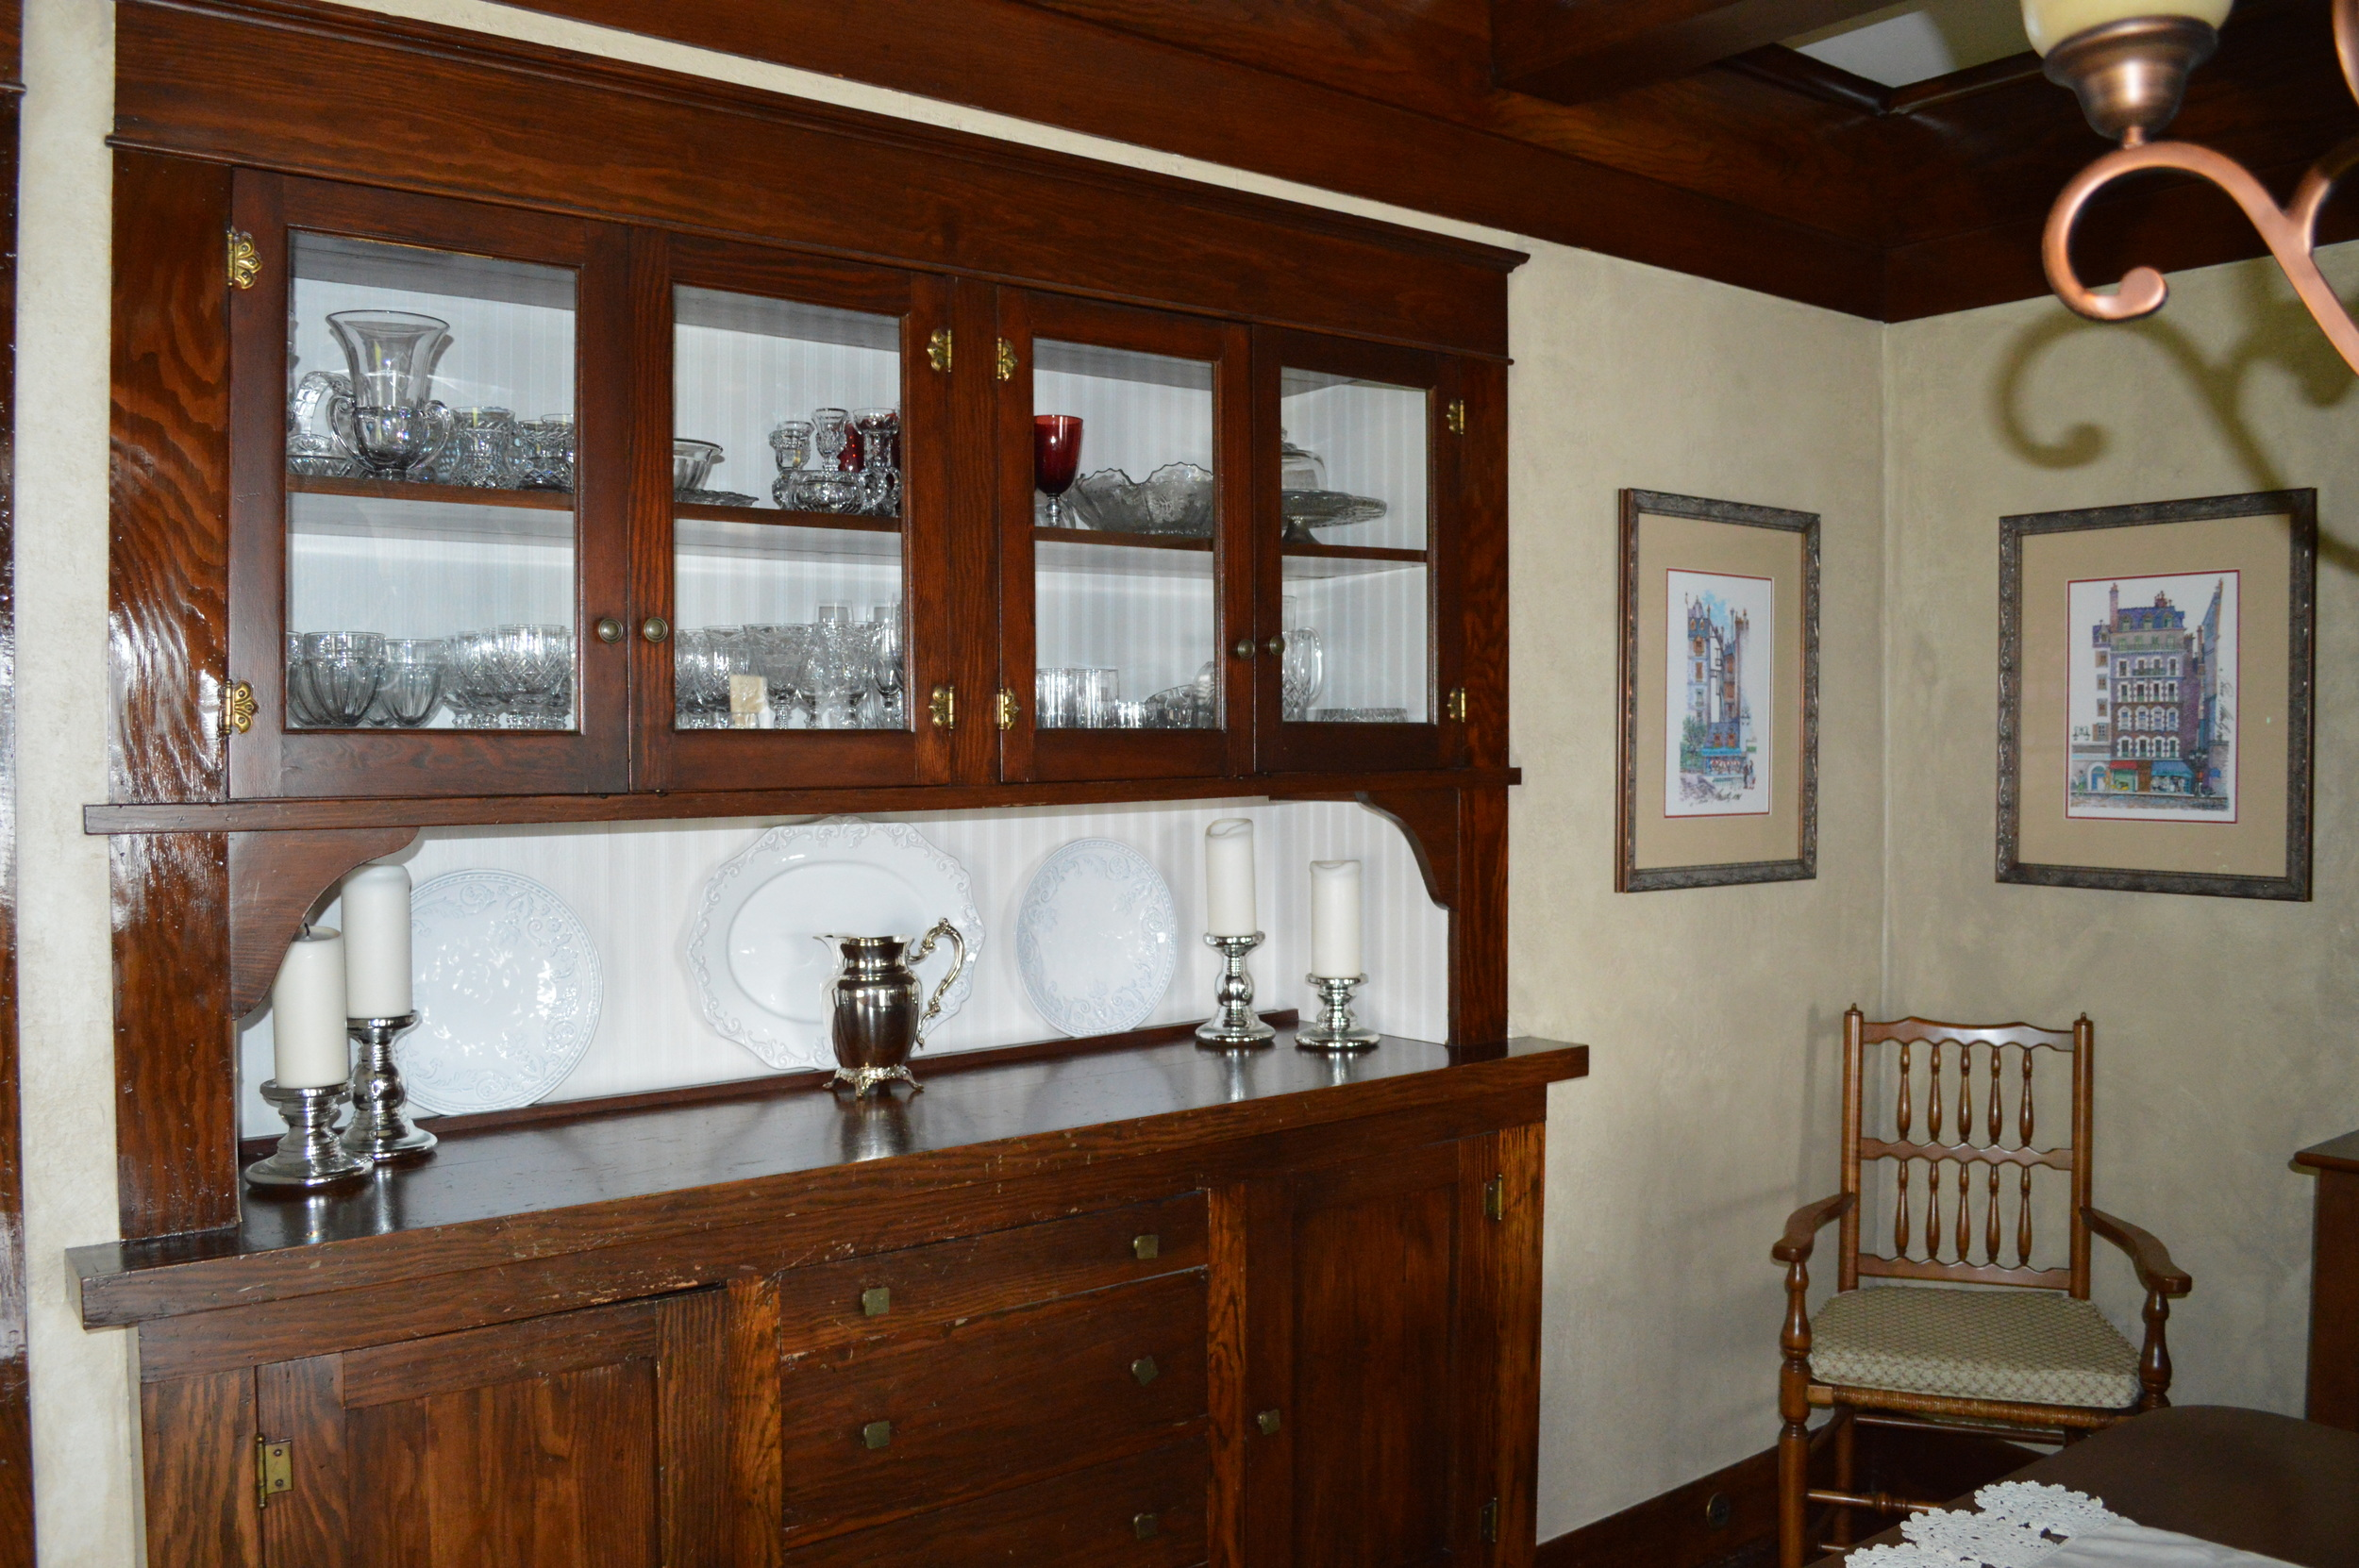 Another view of the built in china cabinet here...